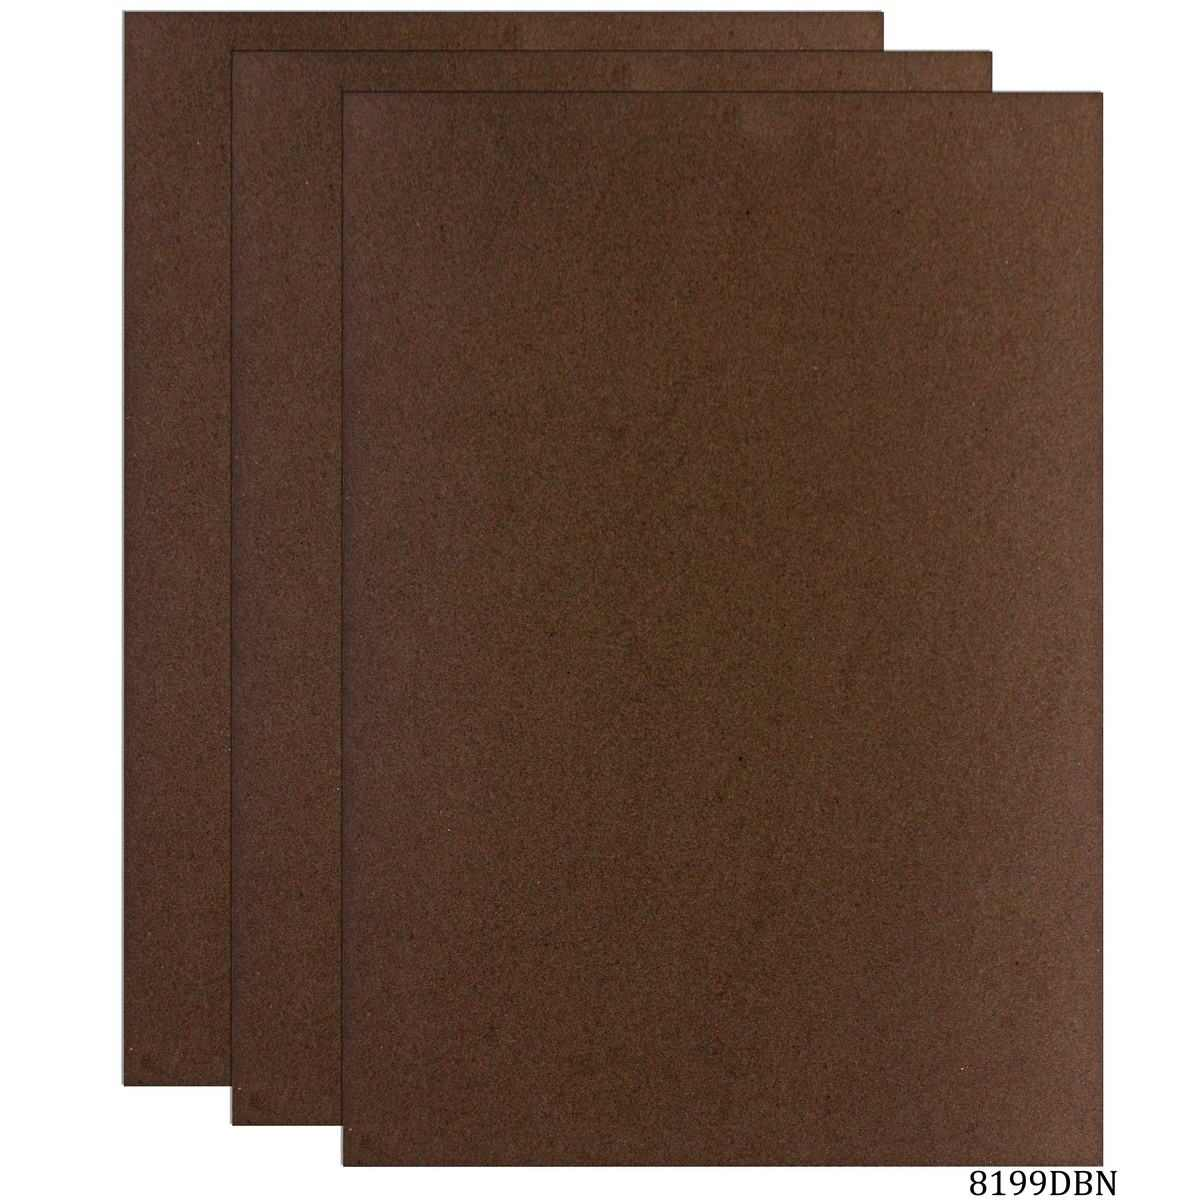 Foam Sheets A4 Size Without Sticker 3MM Brown